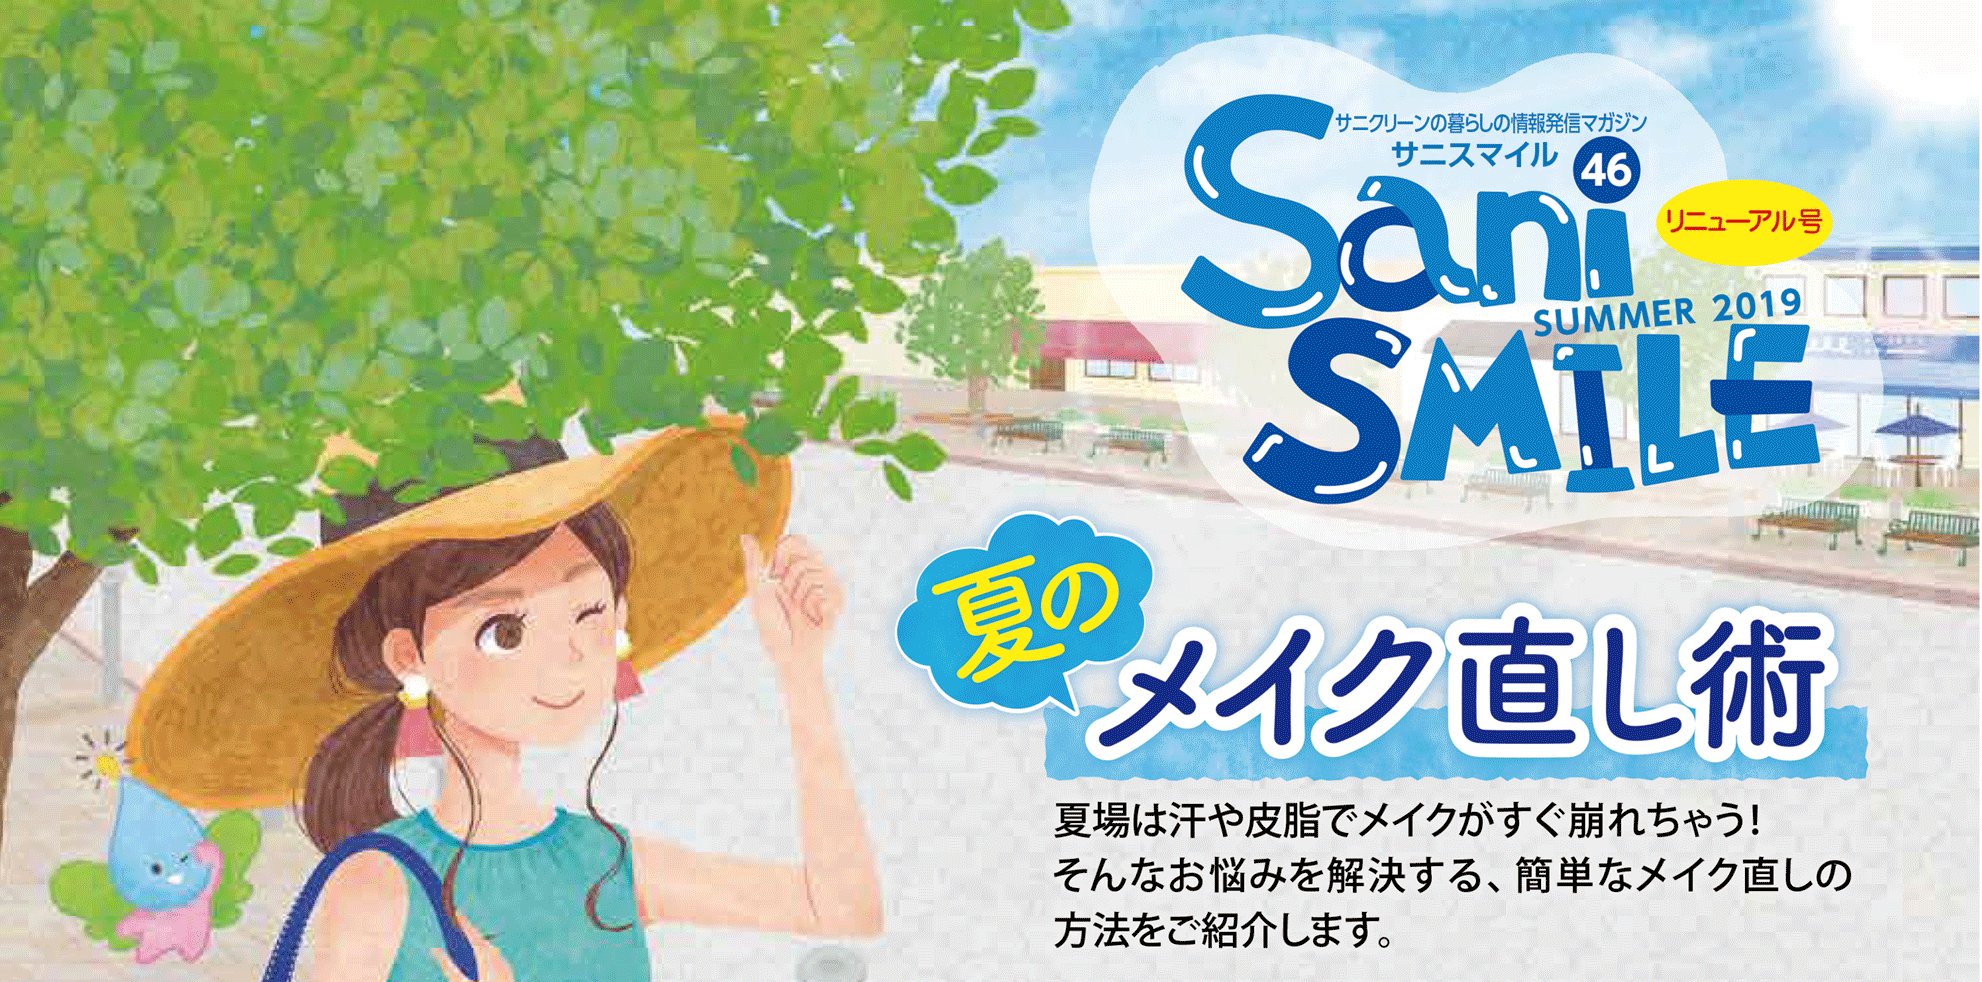 sani SMILE 46 Summer 2019